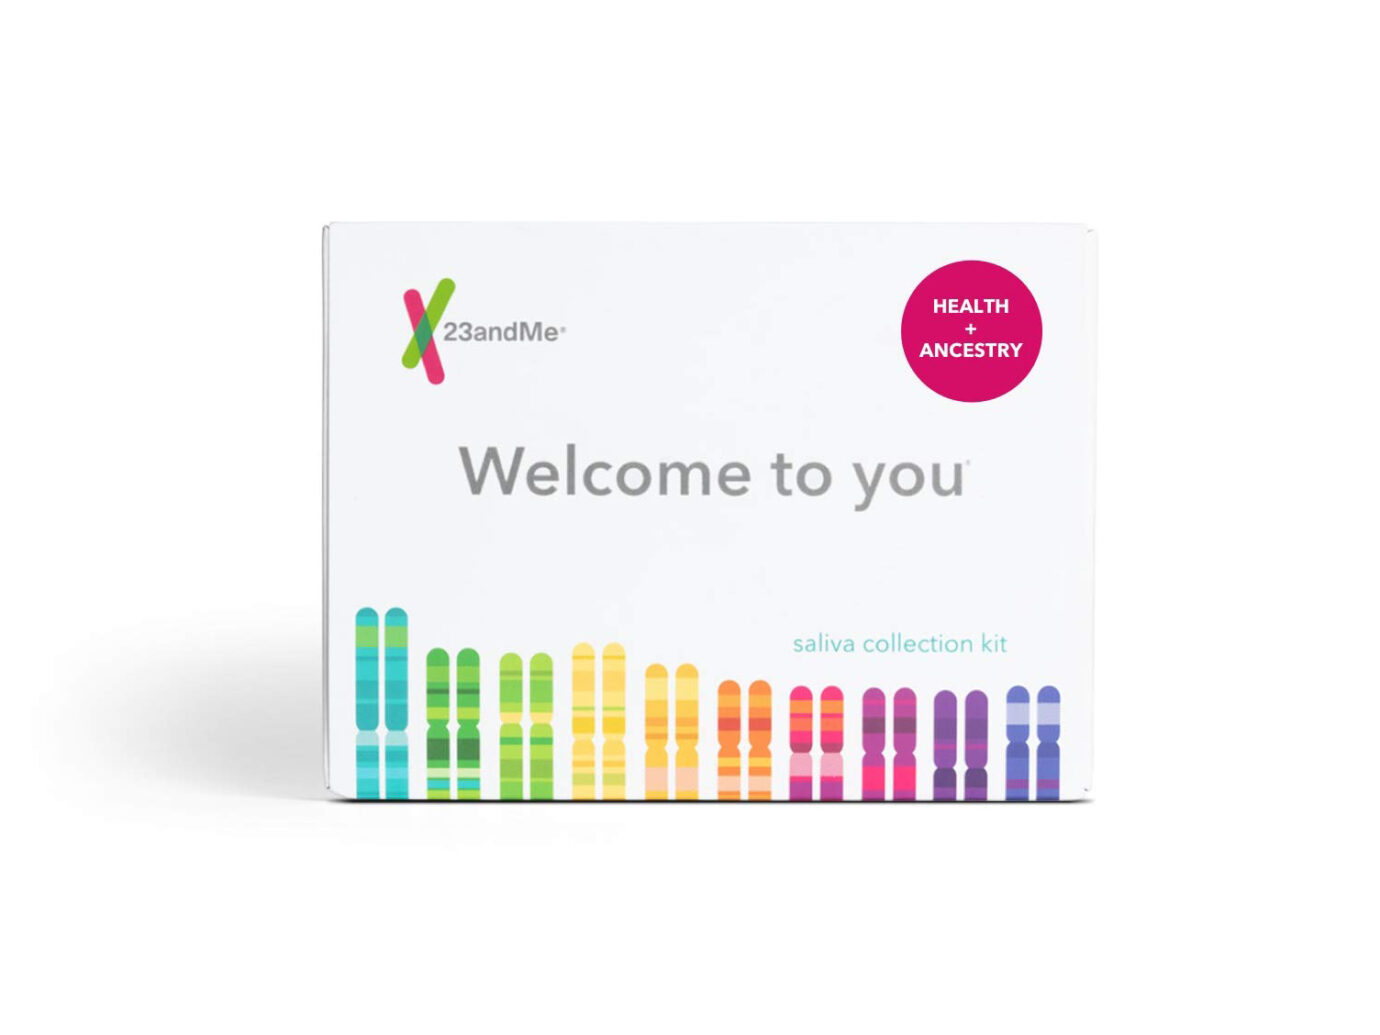 23andMe Health + Ancestry Personal Genetic DNA Test